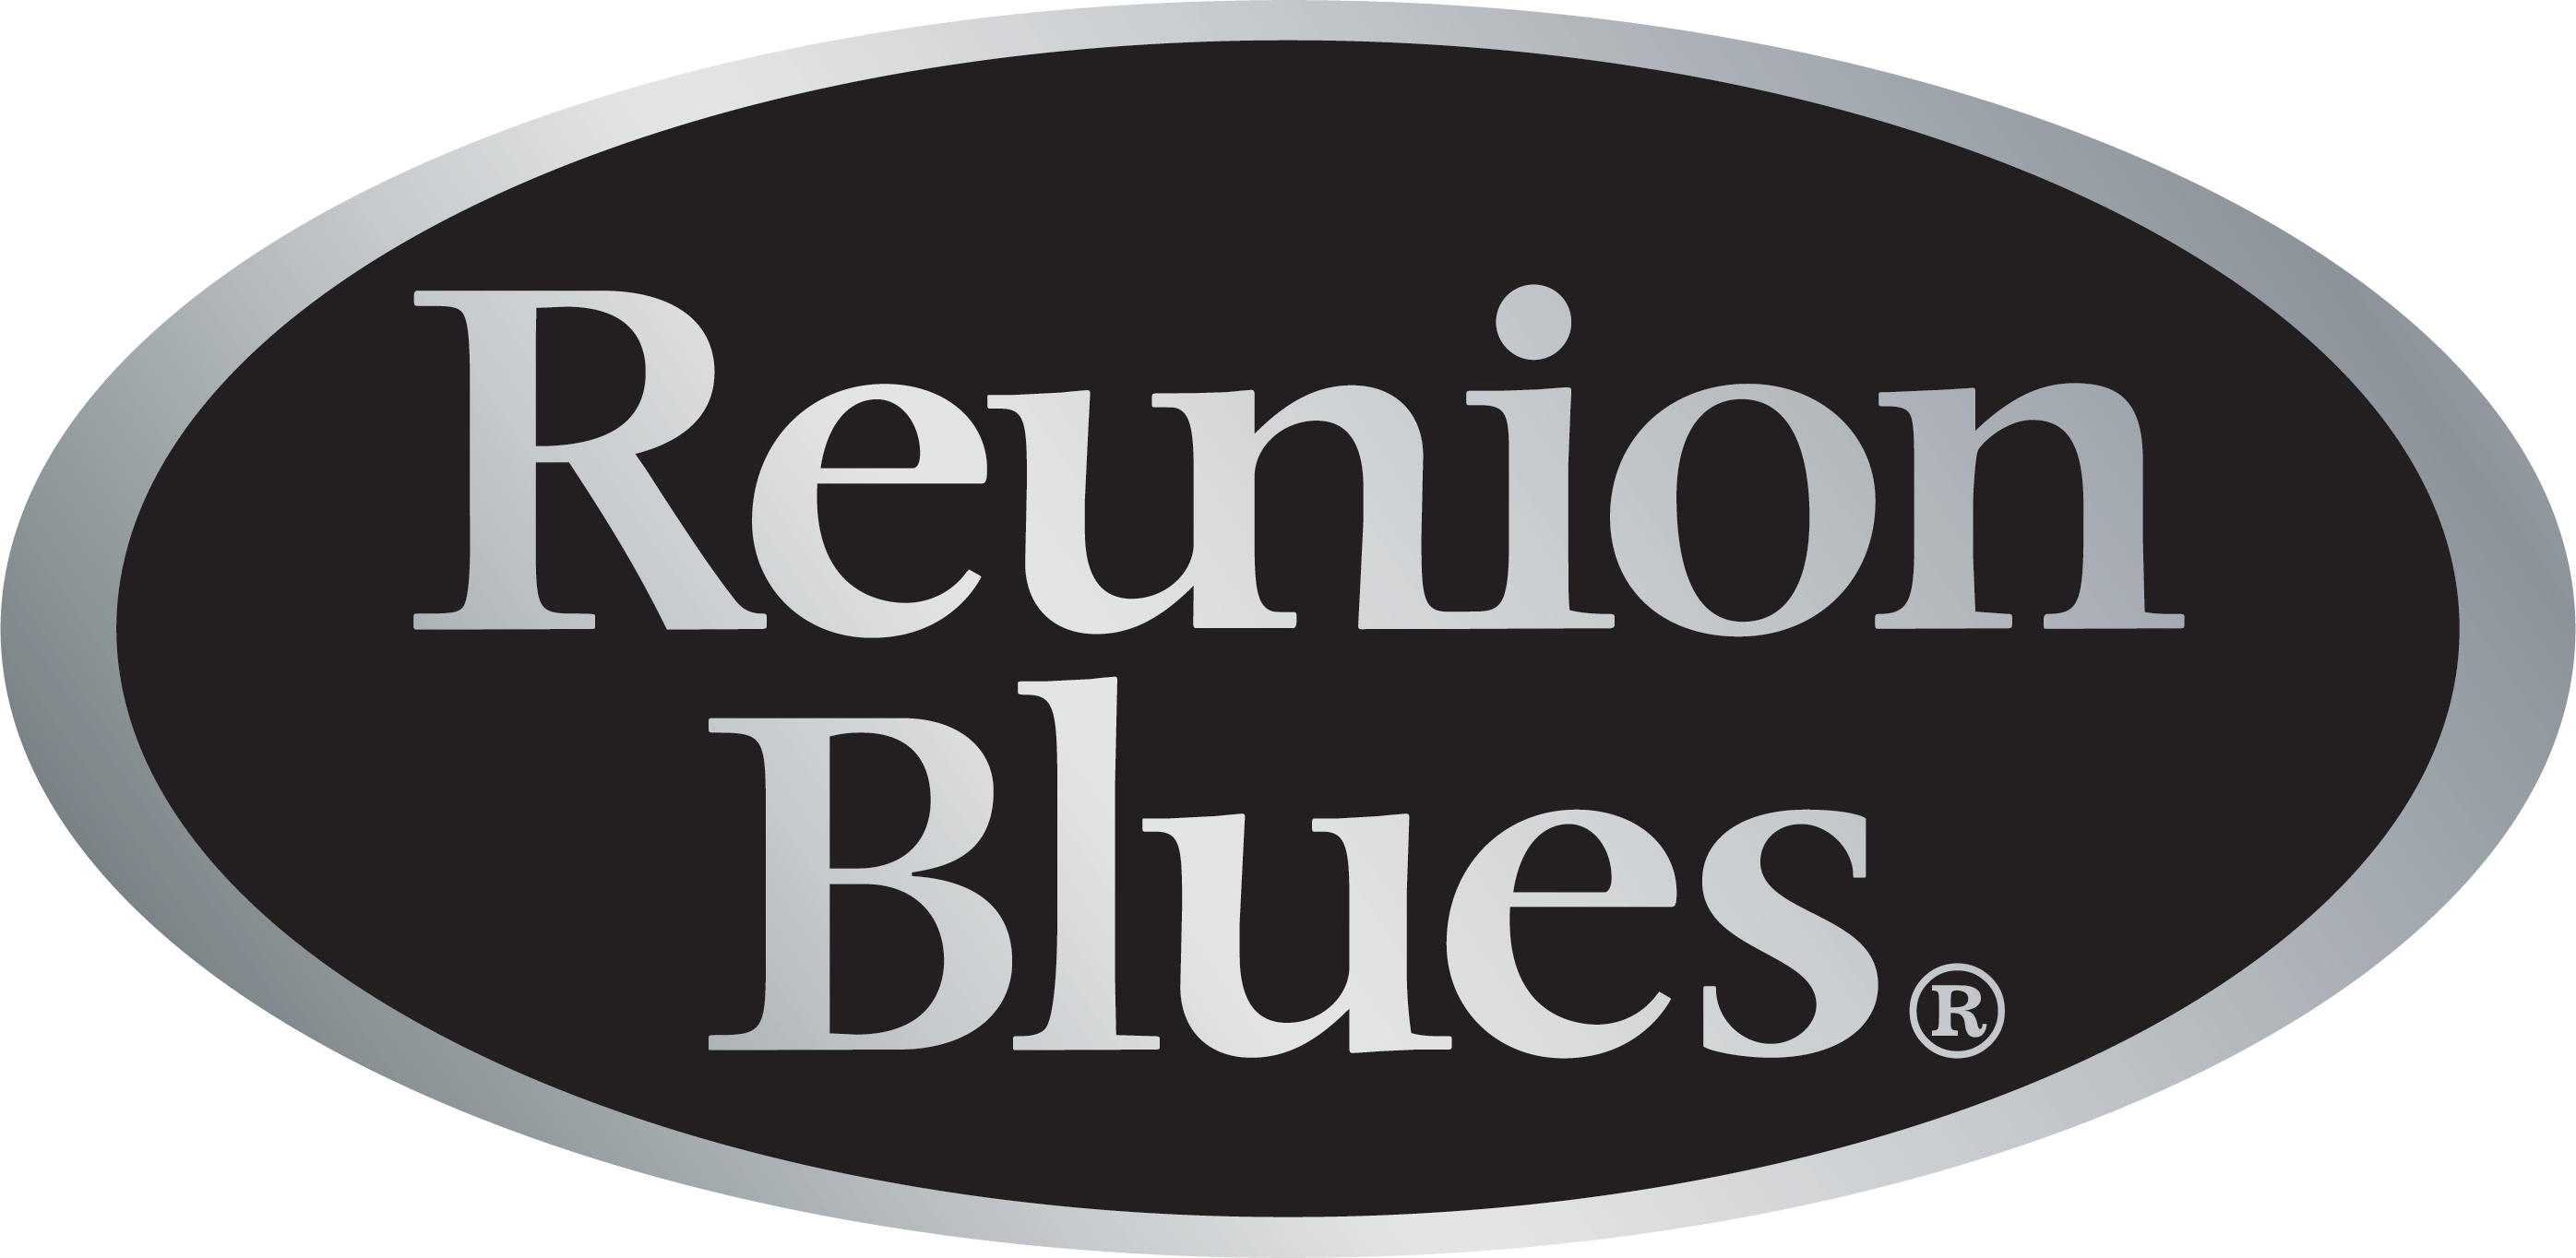 Reunion Blues logo